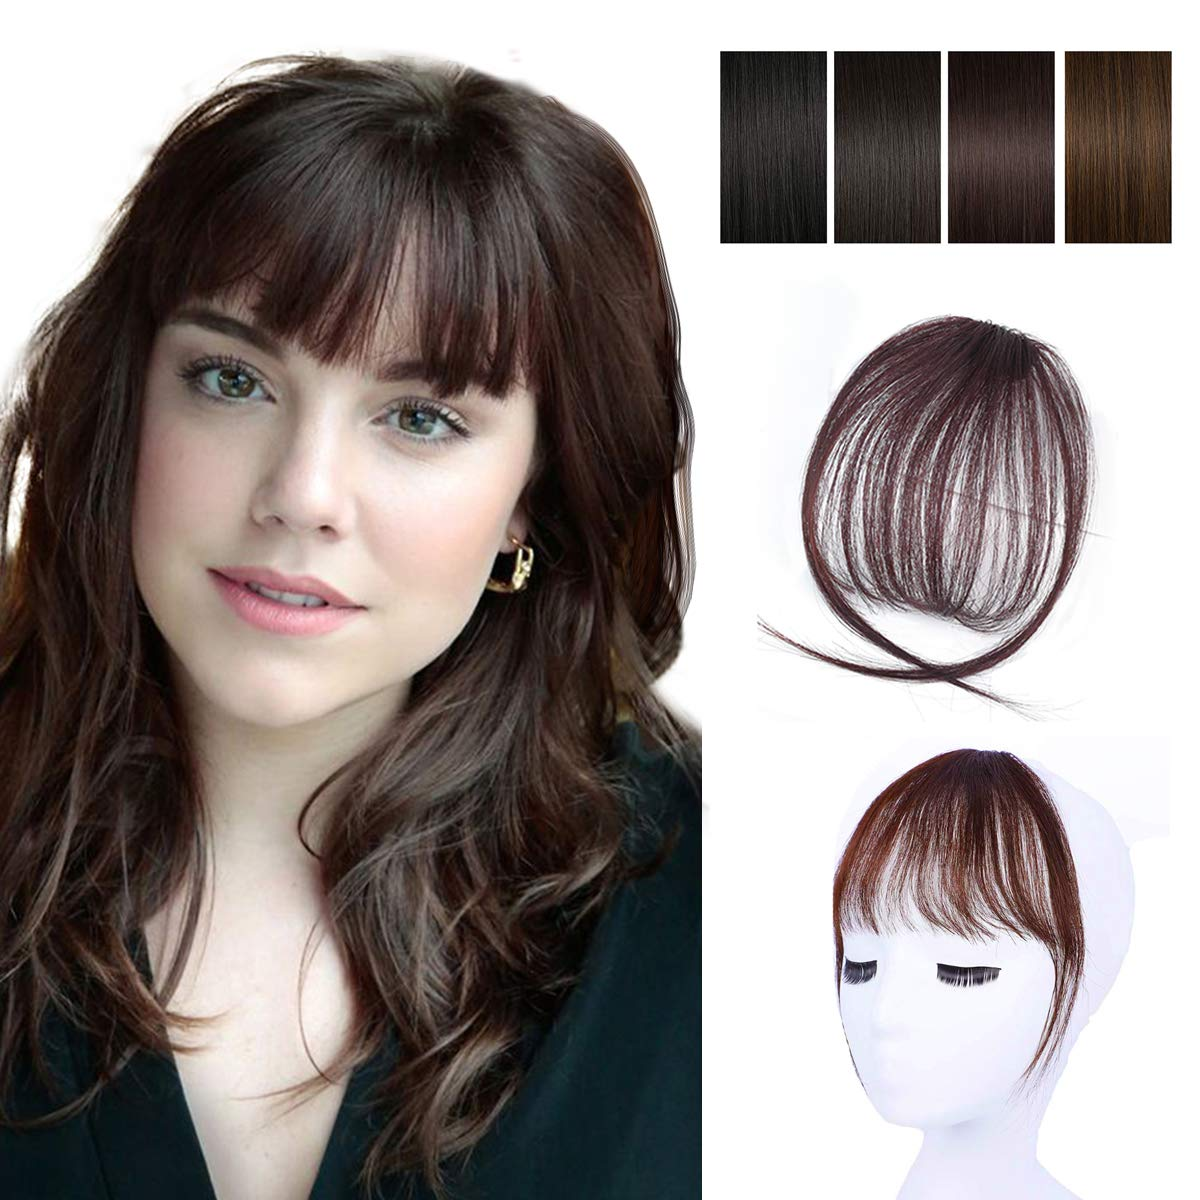 Clip in Bangs 100% Human Hair Air Bangs Extensions Front Fringe Bangs One Piece Hairpiece with Hand Made Tied Bangs for Women (Dark Brown)